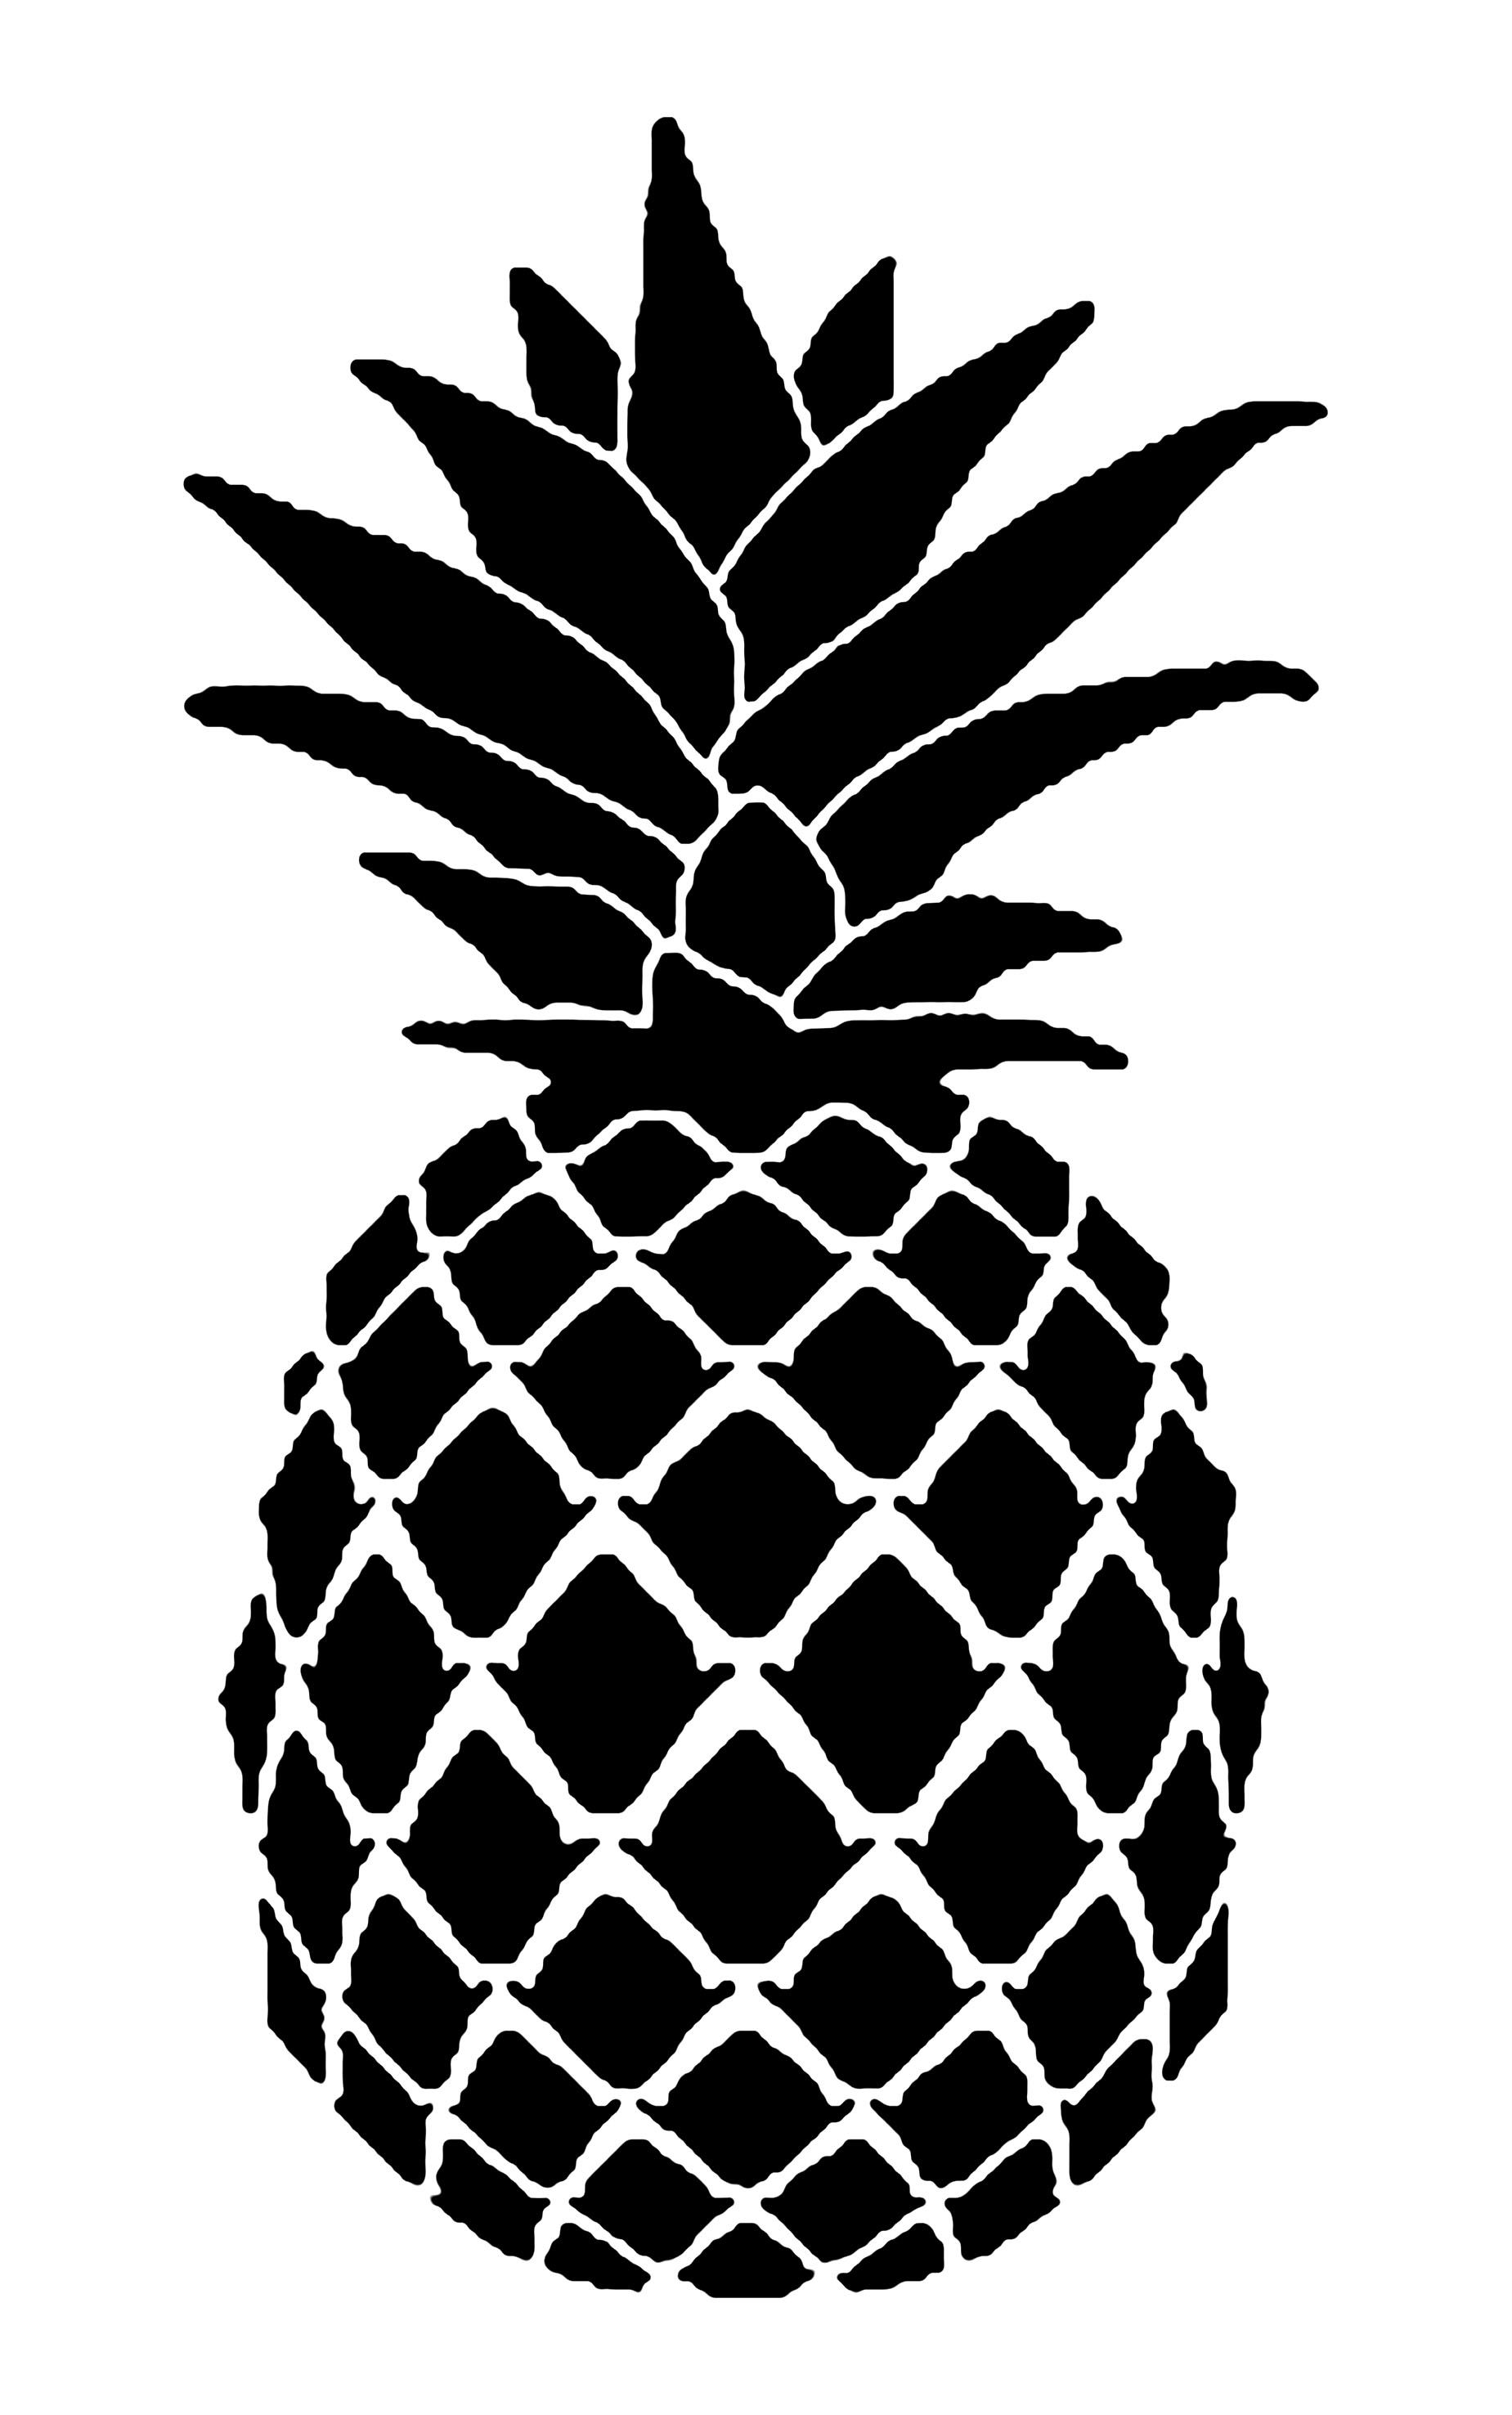 Pin by 方式 on 123 Stencil template, Pineapple, Stencils